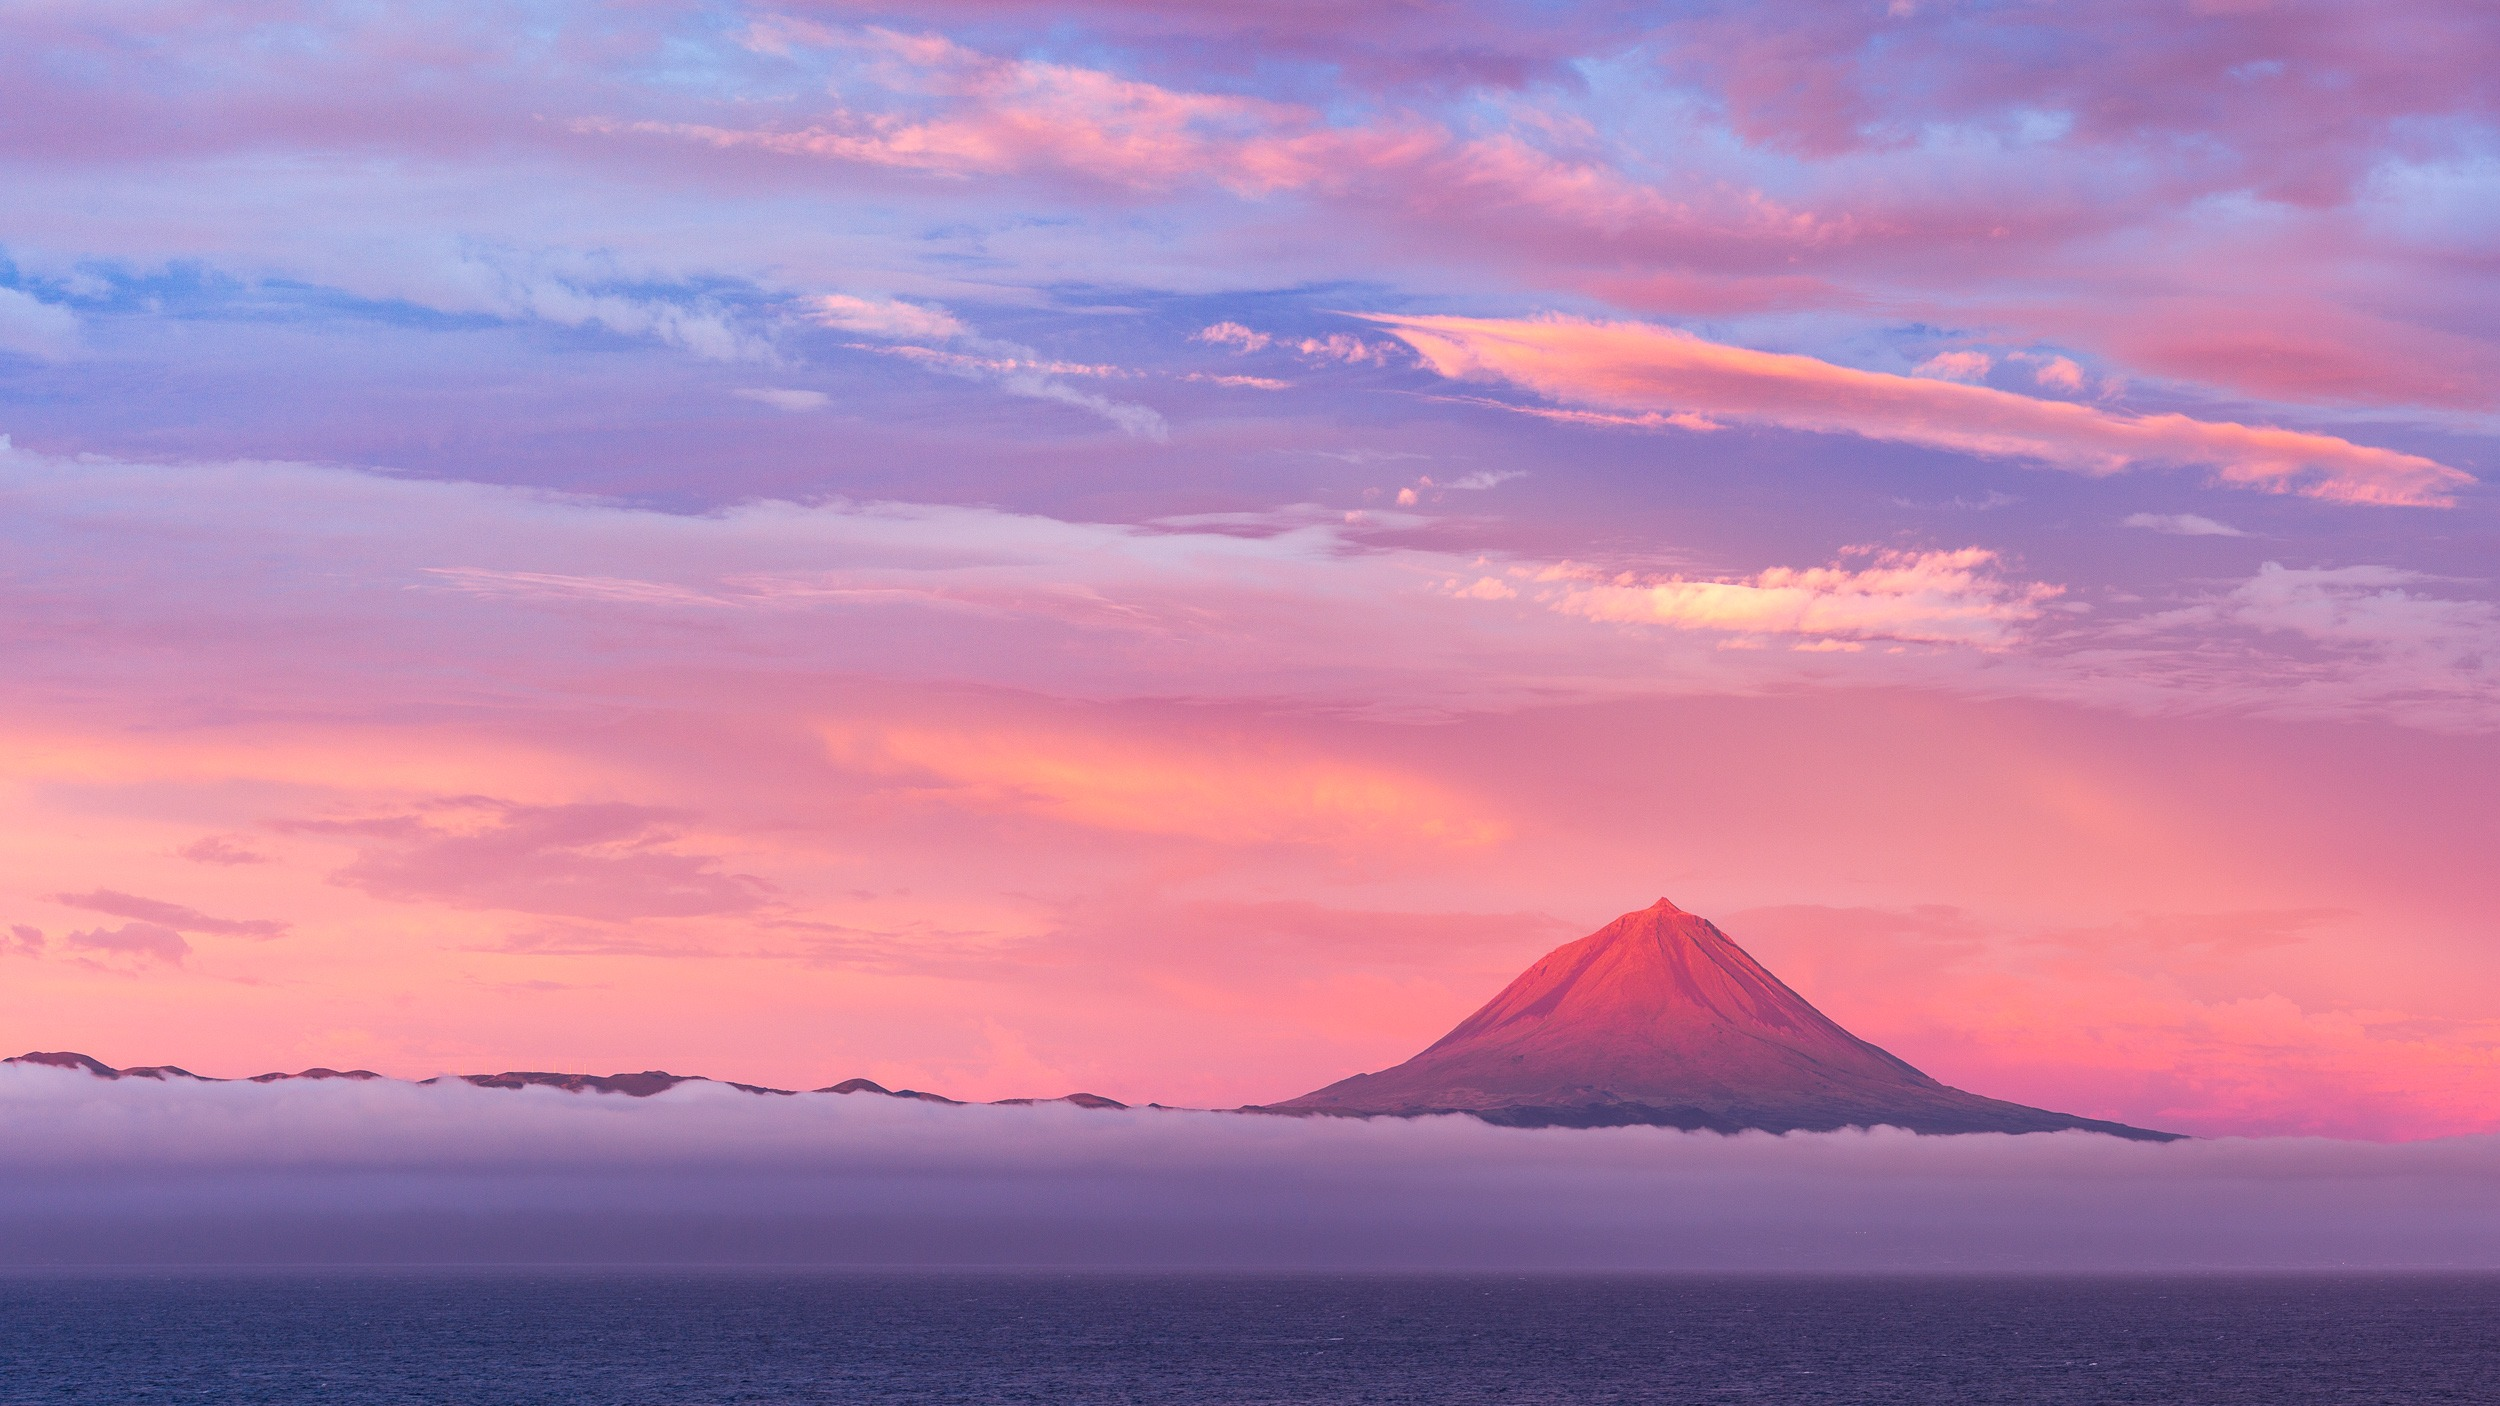 The mountain at sunrise viewed from São Jorge Island, Azores